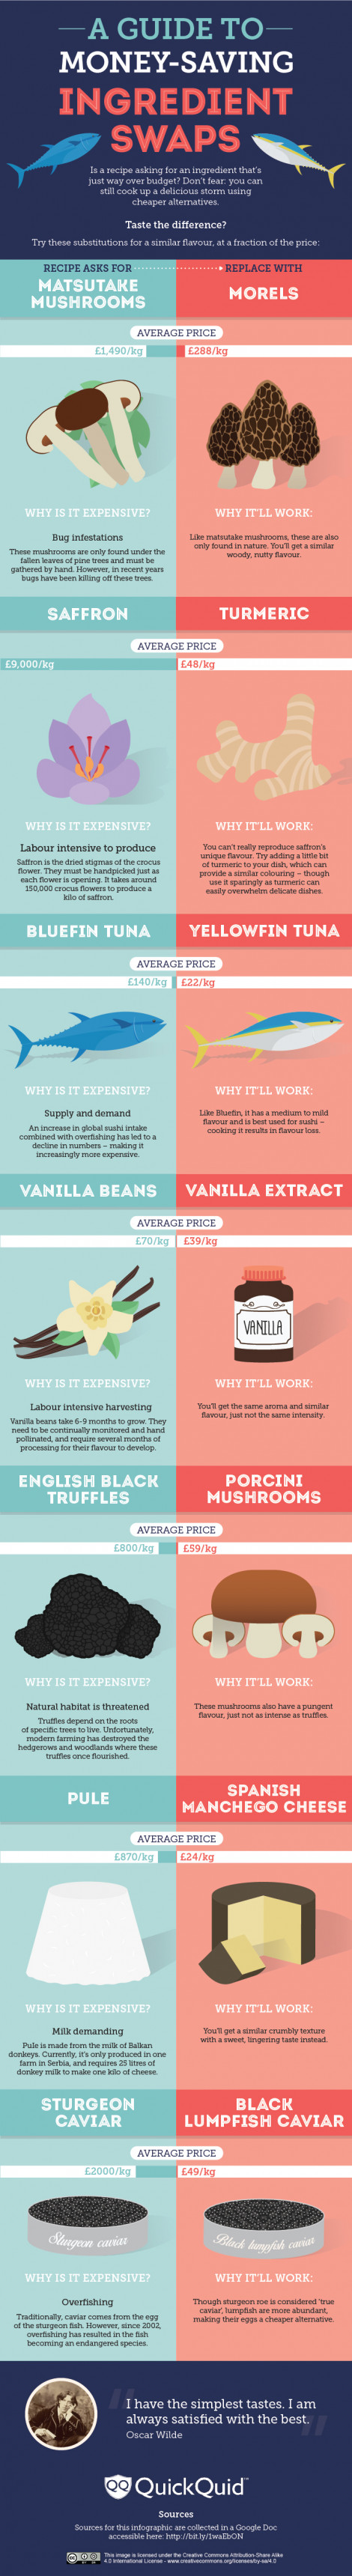 A Guide to Money-Saving Ingredient Swaps